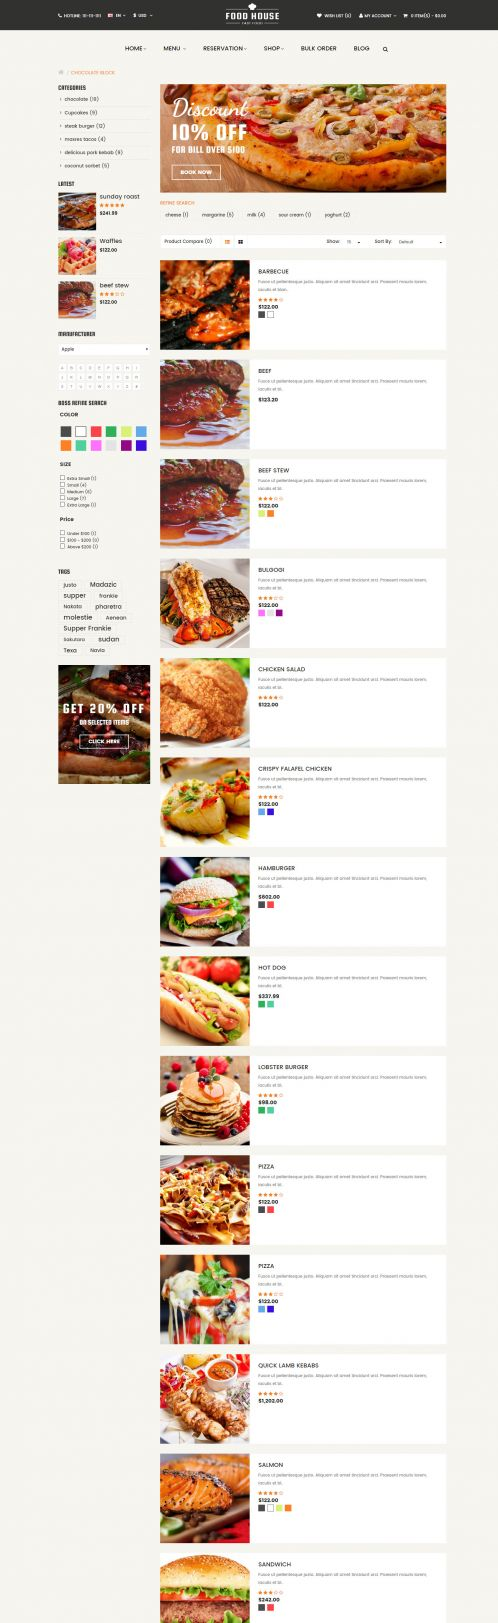 Bossthemes FoodHouse - Category List